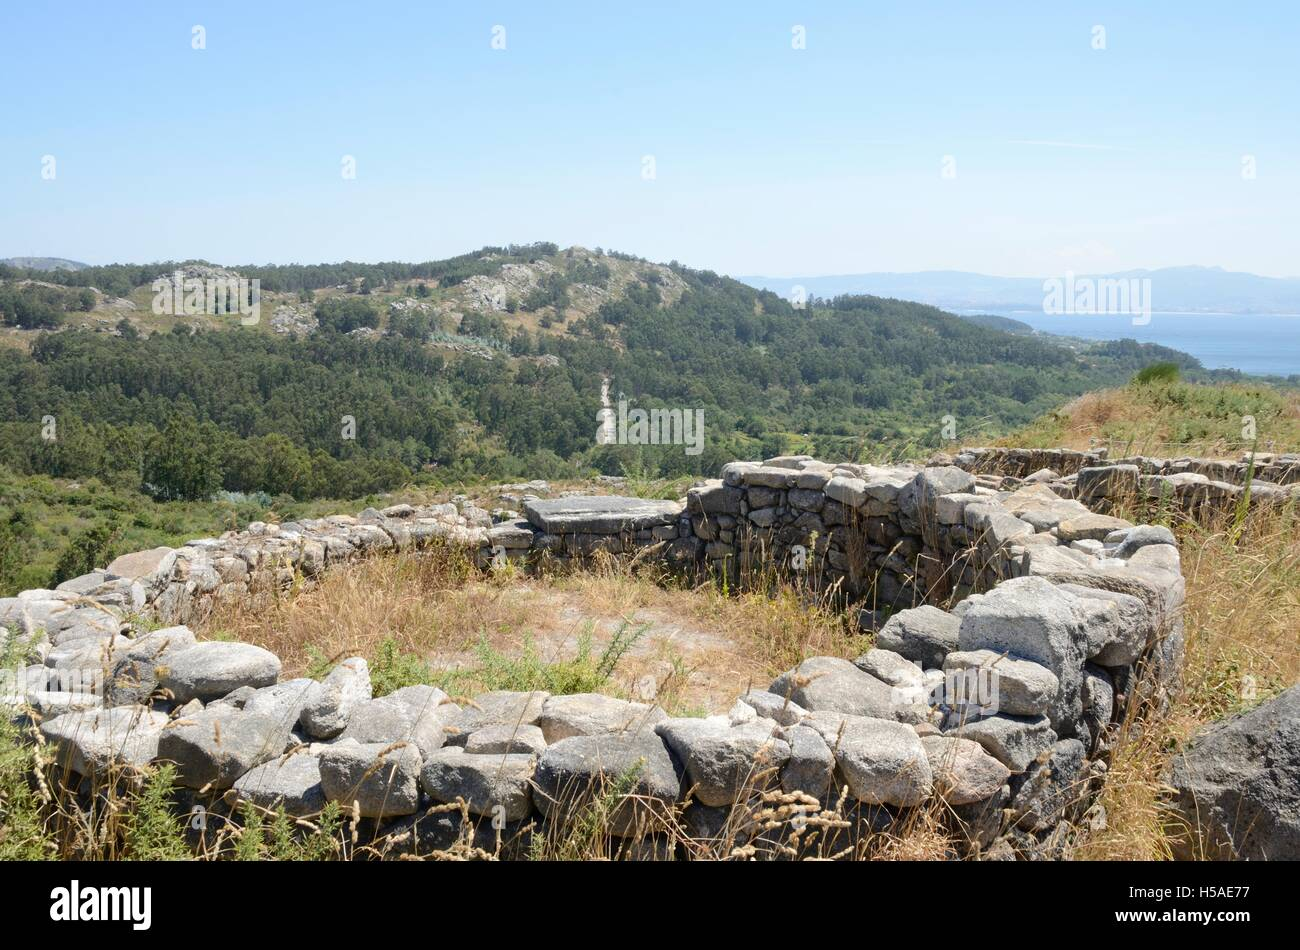 Prehistorical  Ruins of a hillfort the Mountain of Facho   in Cangas, in the province of Pontevedra, Galicia, Spain. - Stock Image